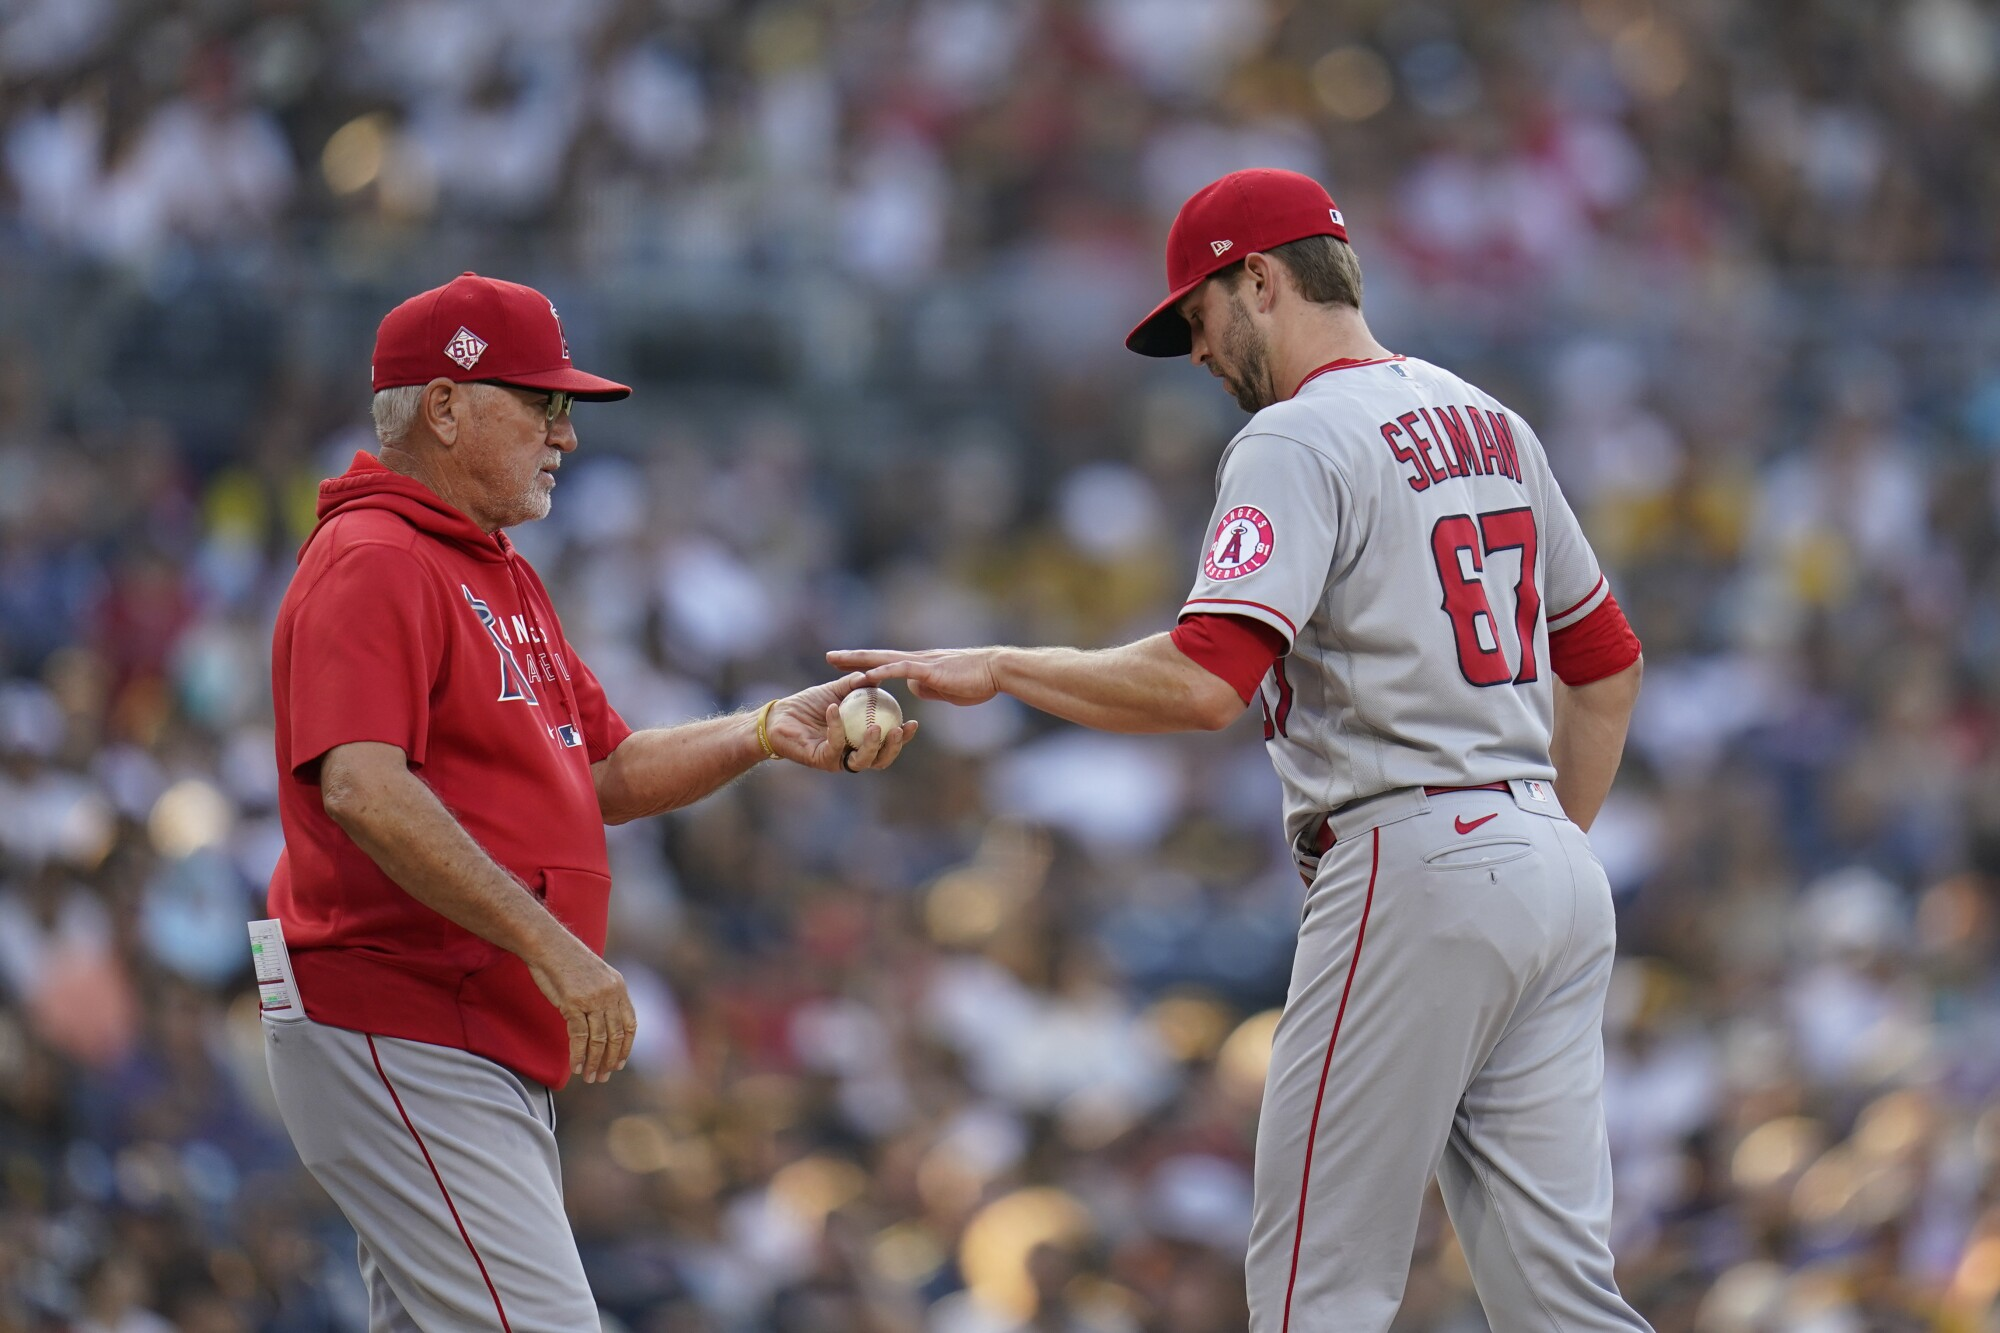 The Angels gave up eight runs in the second inning Wednesday in a loss to the Padres. (AP Photo/Gregory Bull)